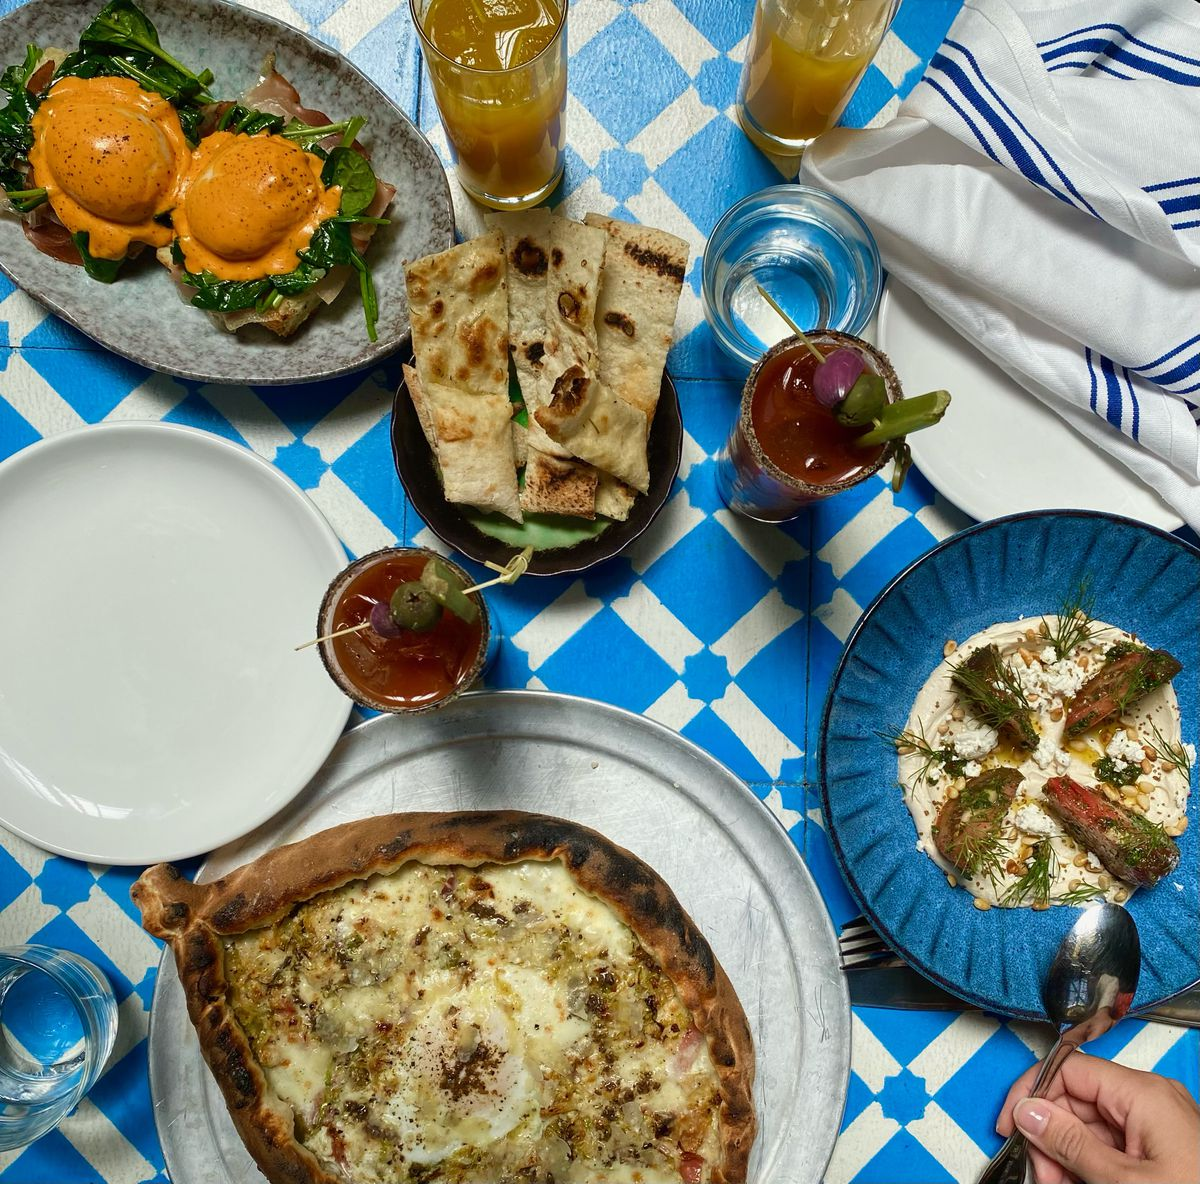 An overhead photograph of several dishes, including a pizza, eggs benedict, and a bowl of tahini and sliced tomato